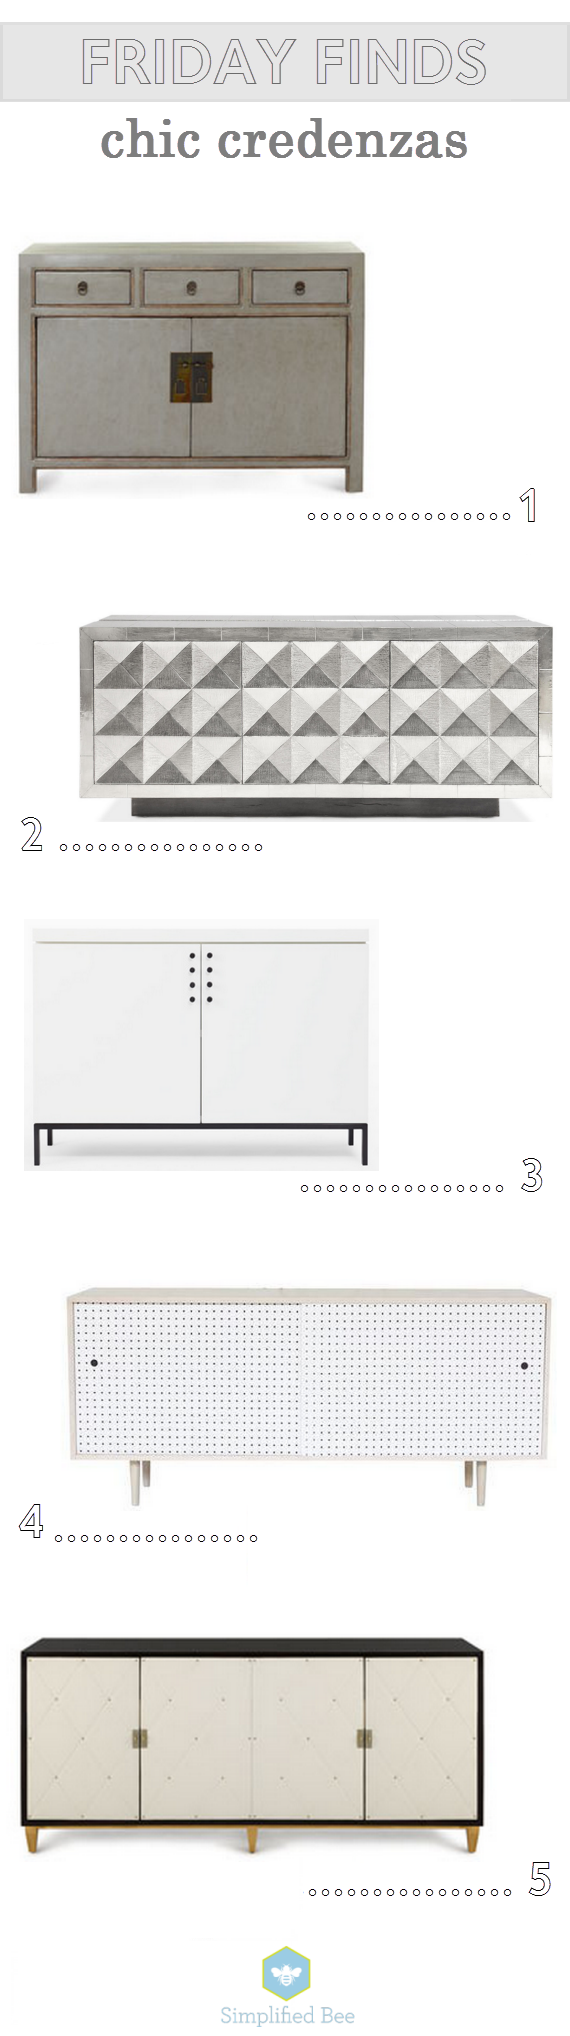 chic credenzas // friday finds // simplifiedbee.com